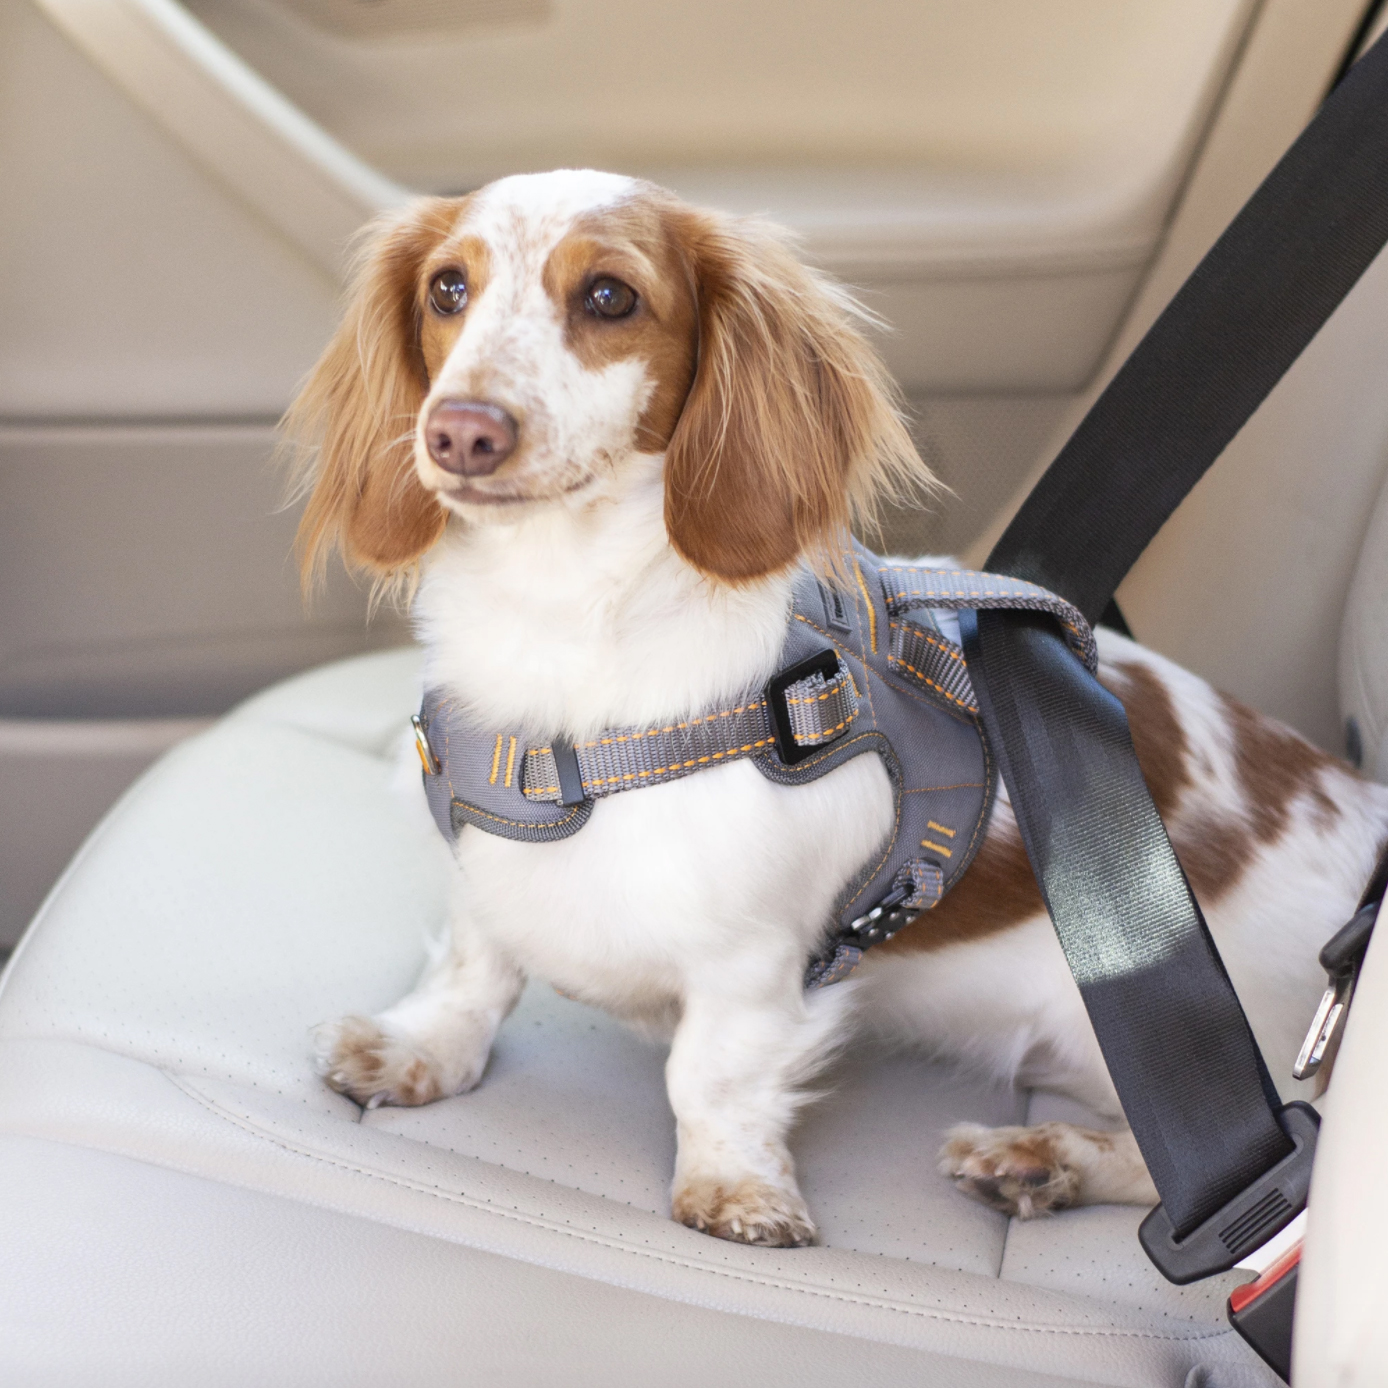 thunderbelt-car-restraint-harness-for-dogs